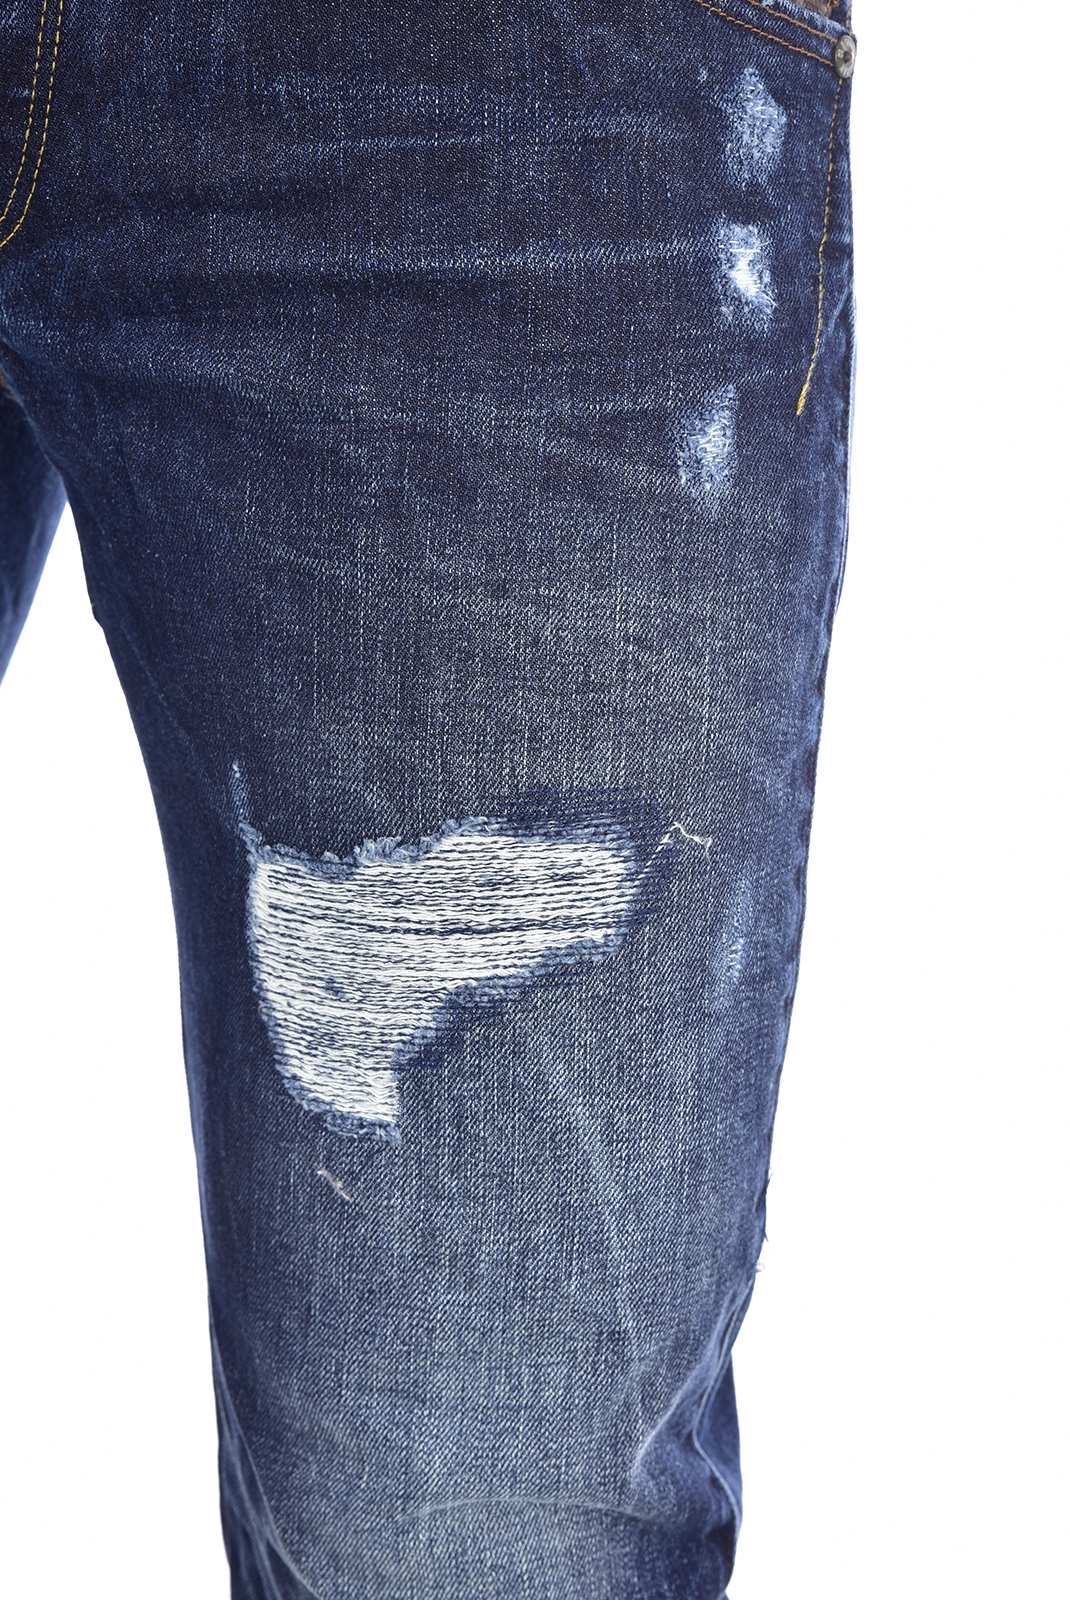 Jeans  G-star 51030-5689-5564 arc bleu